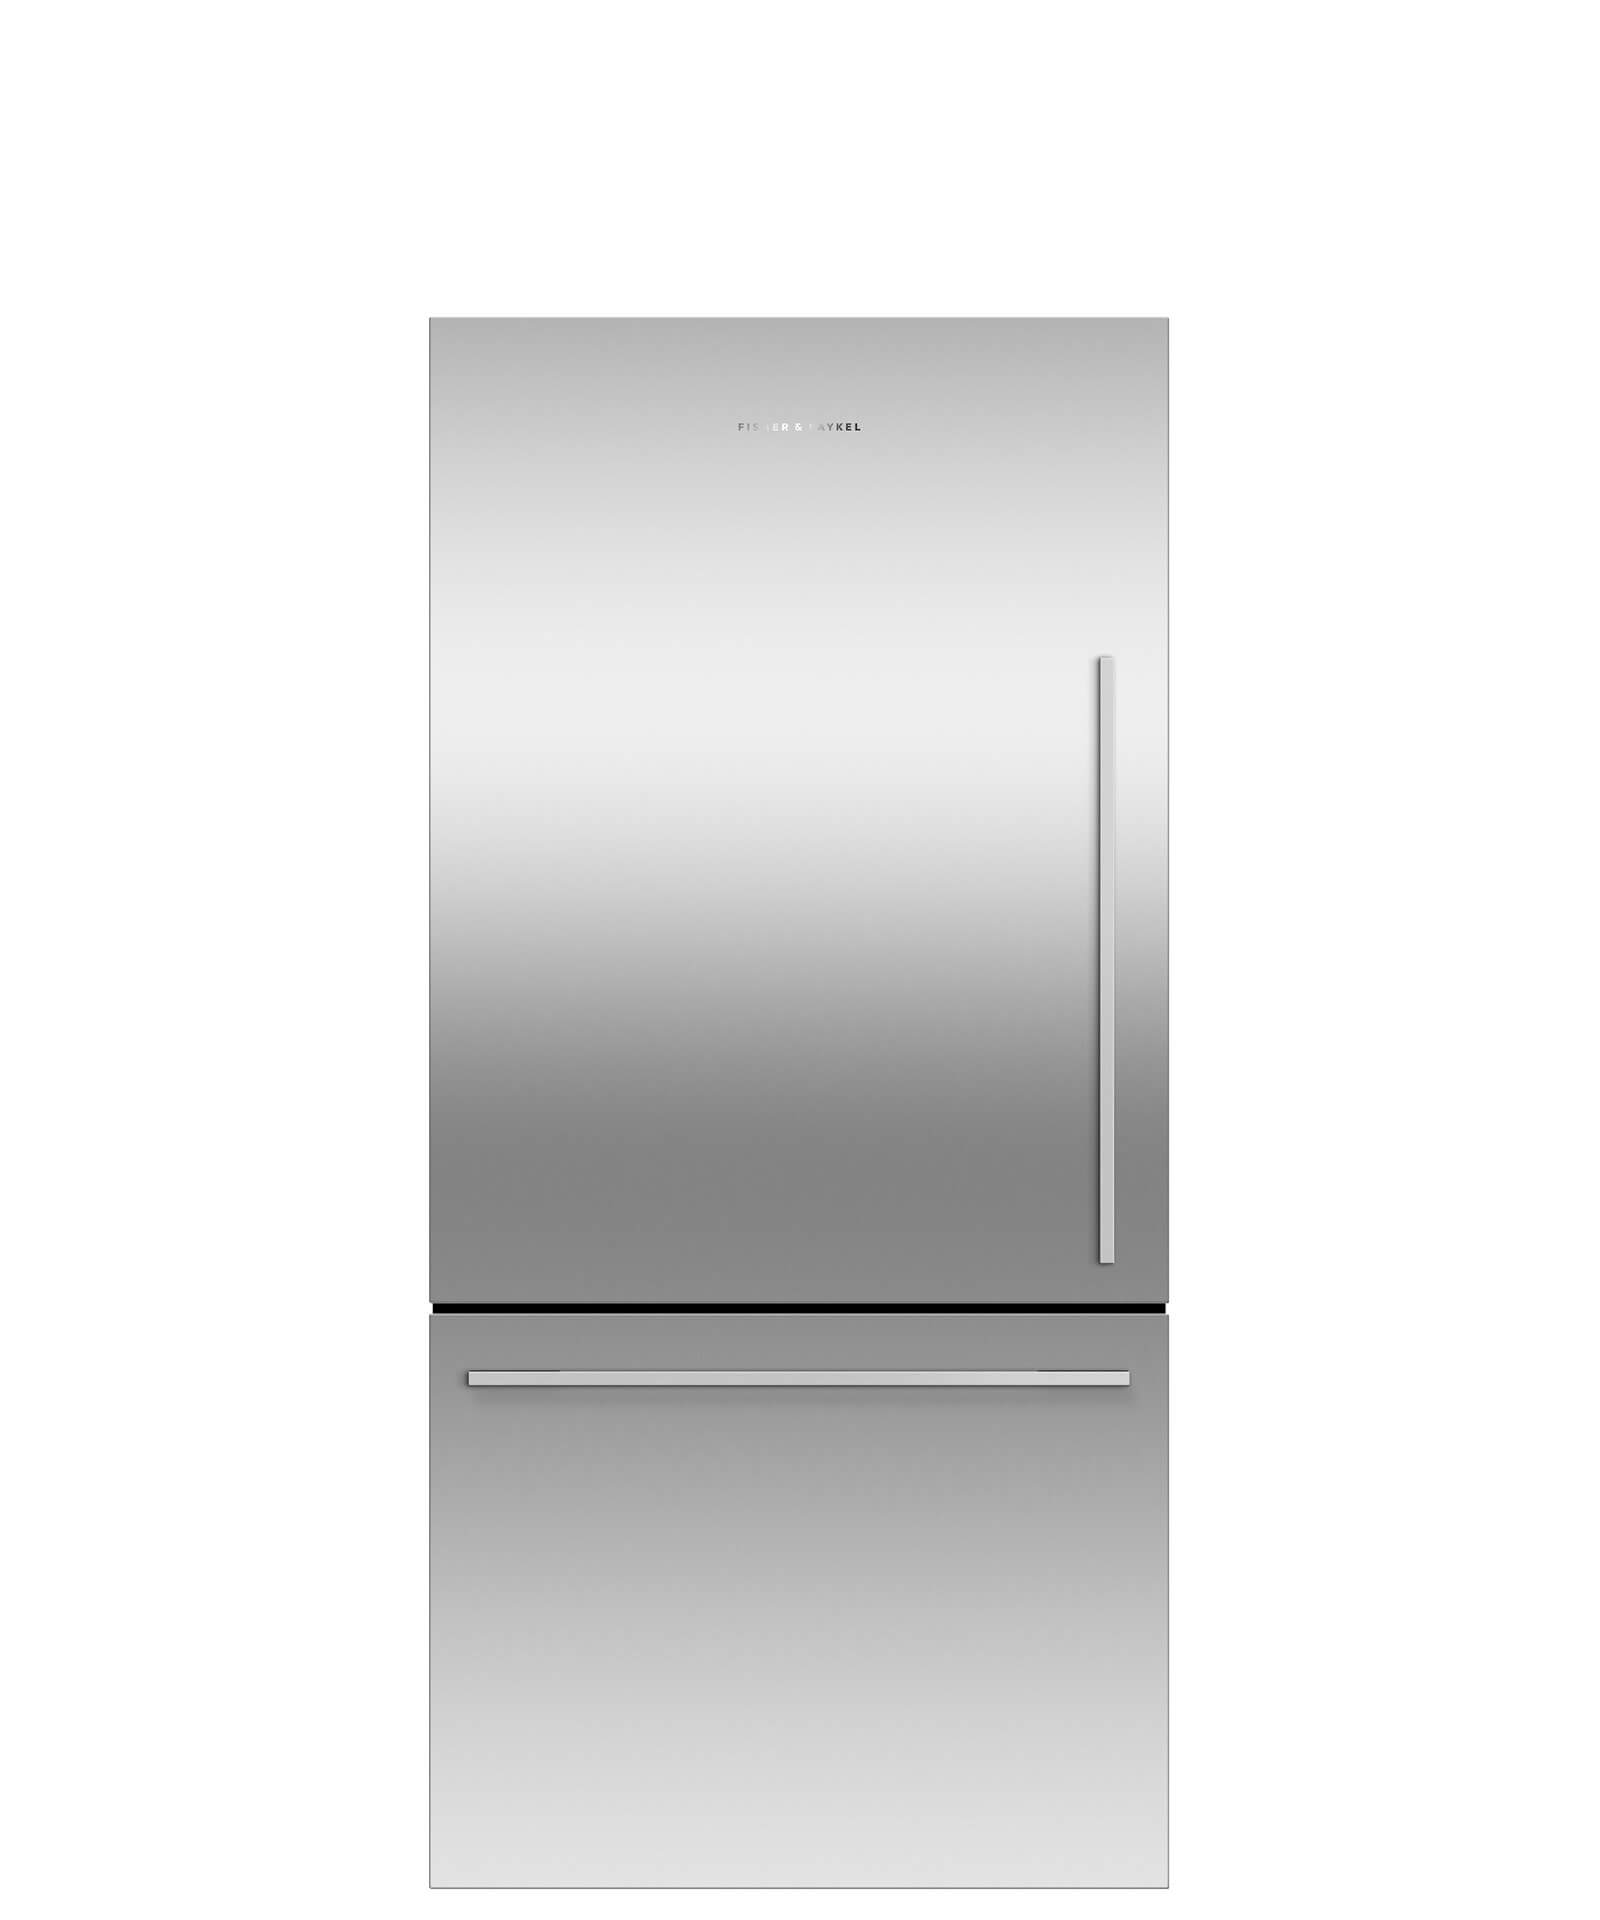 DISPLAY MODEL--Counter Depth Refrigerator 17 cu ft